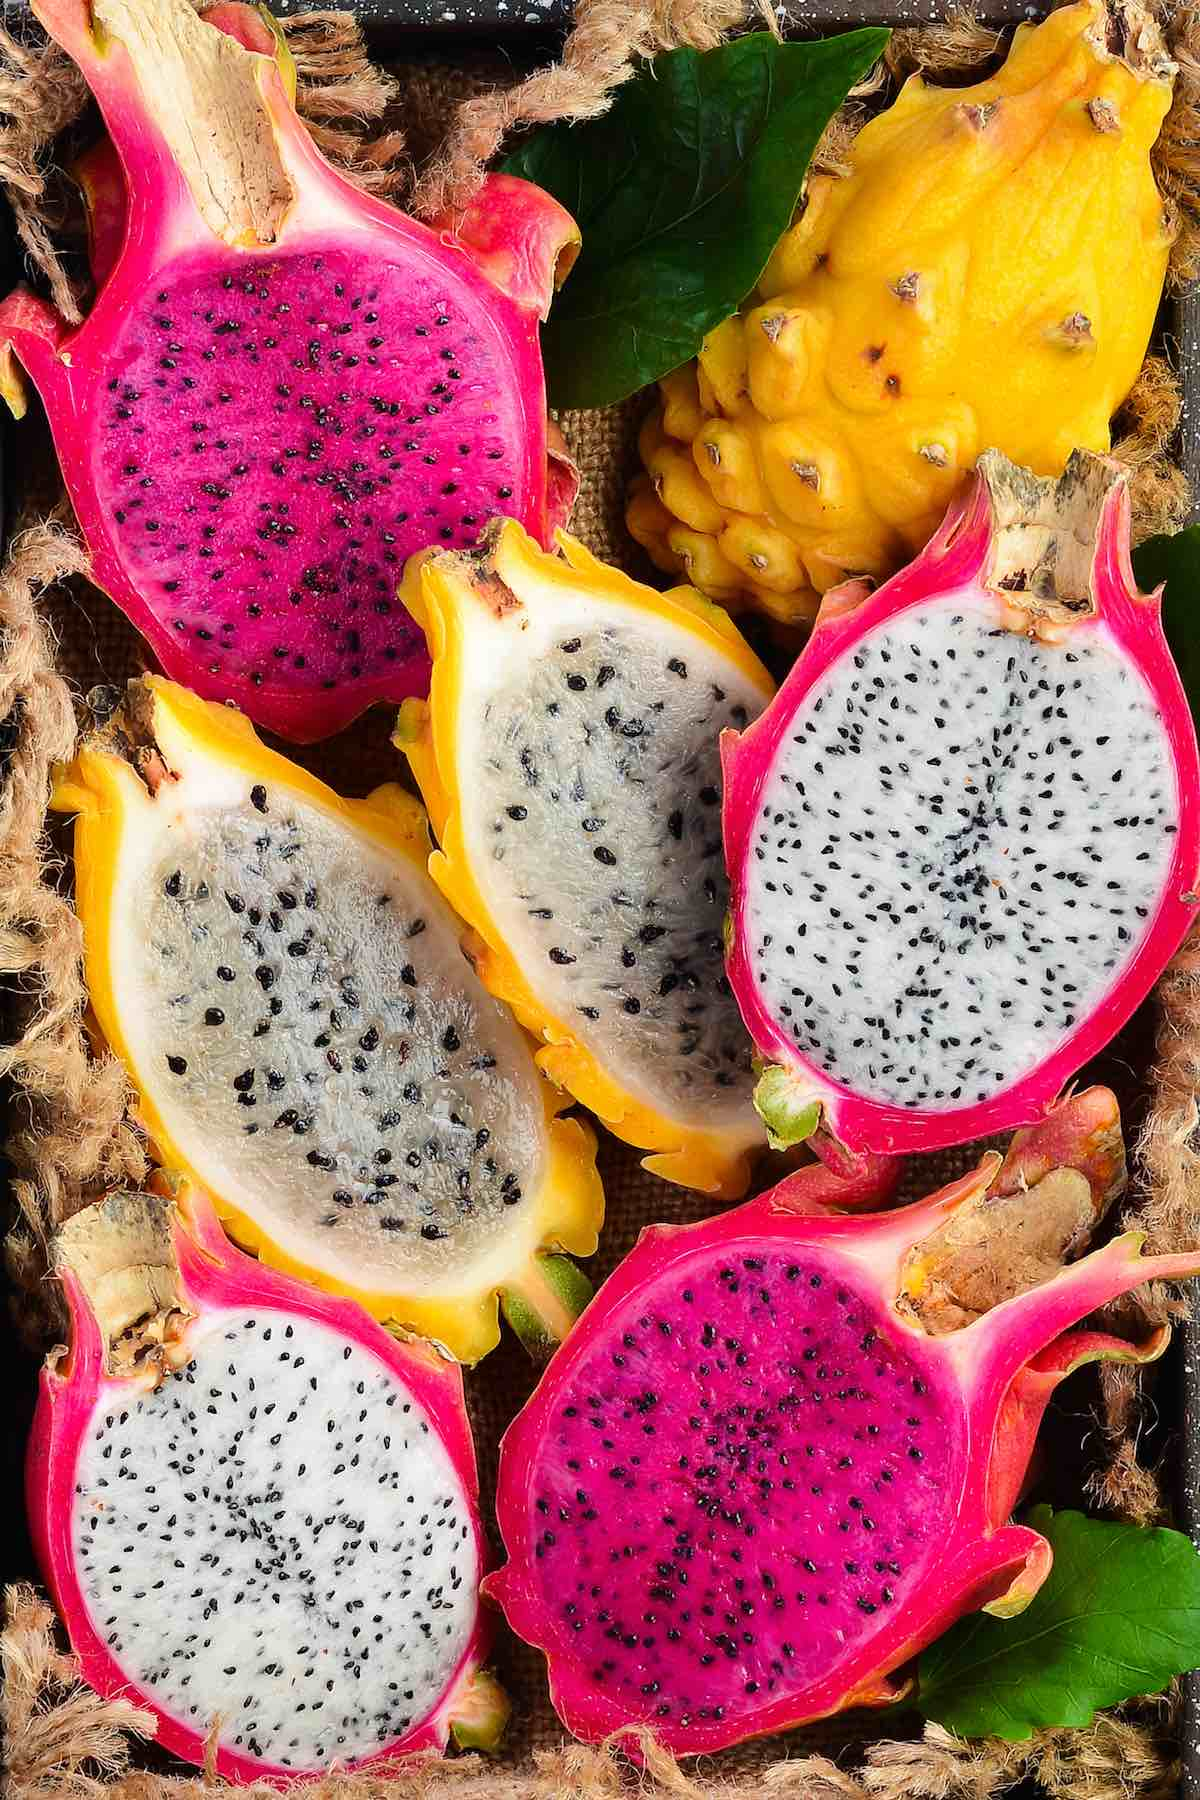 Side-by-side comparison of red, white and yellow dragon fruit showing the different colors and textures of the flesh